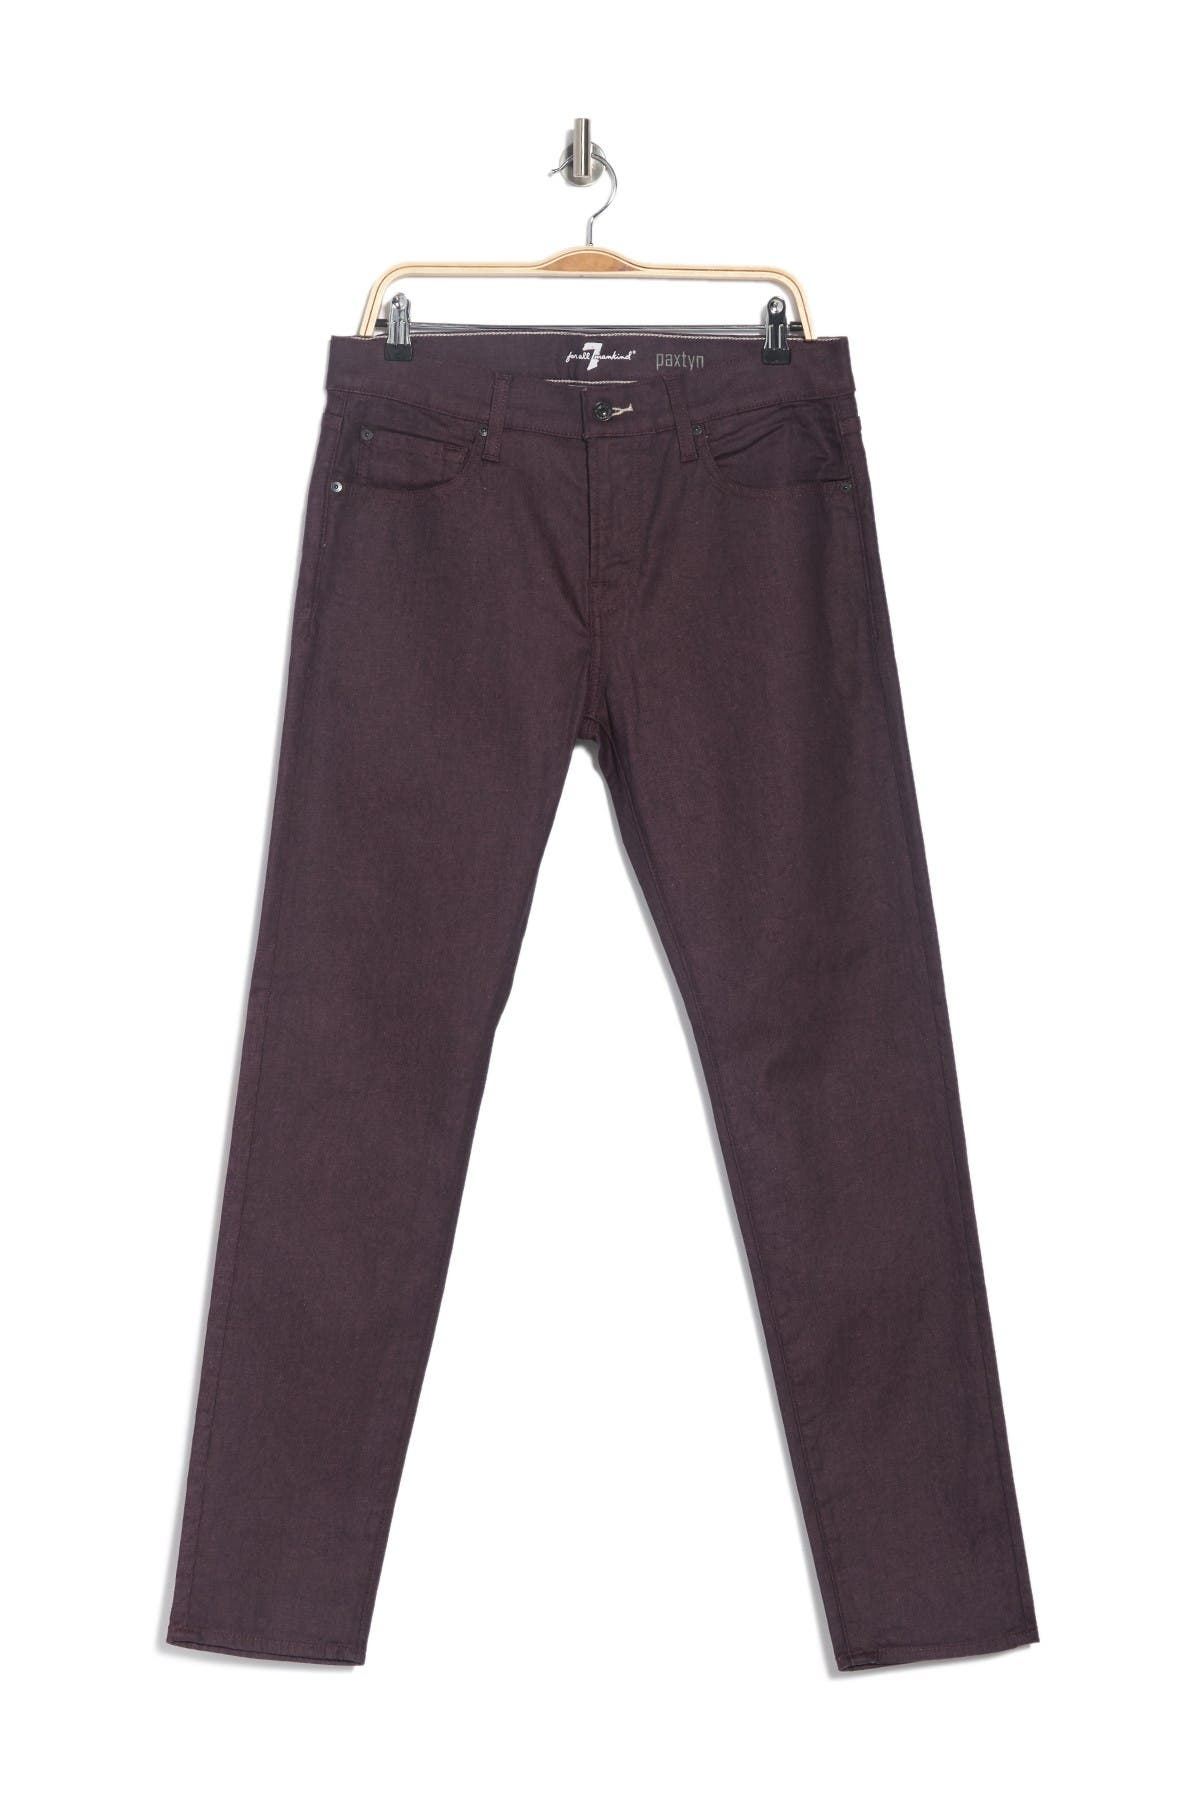 Image of 7 For All Mankind Paxtyn Skinny Fit Stretch Twill Performance Pants